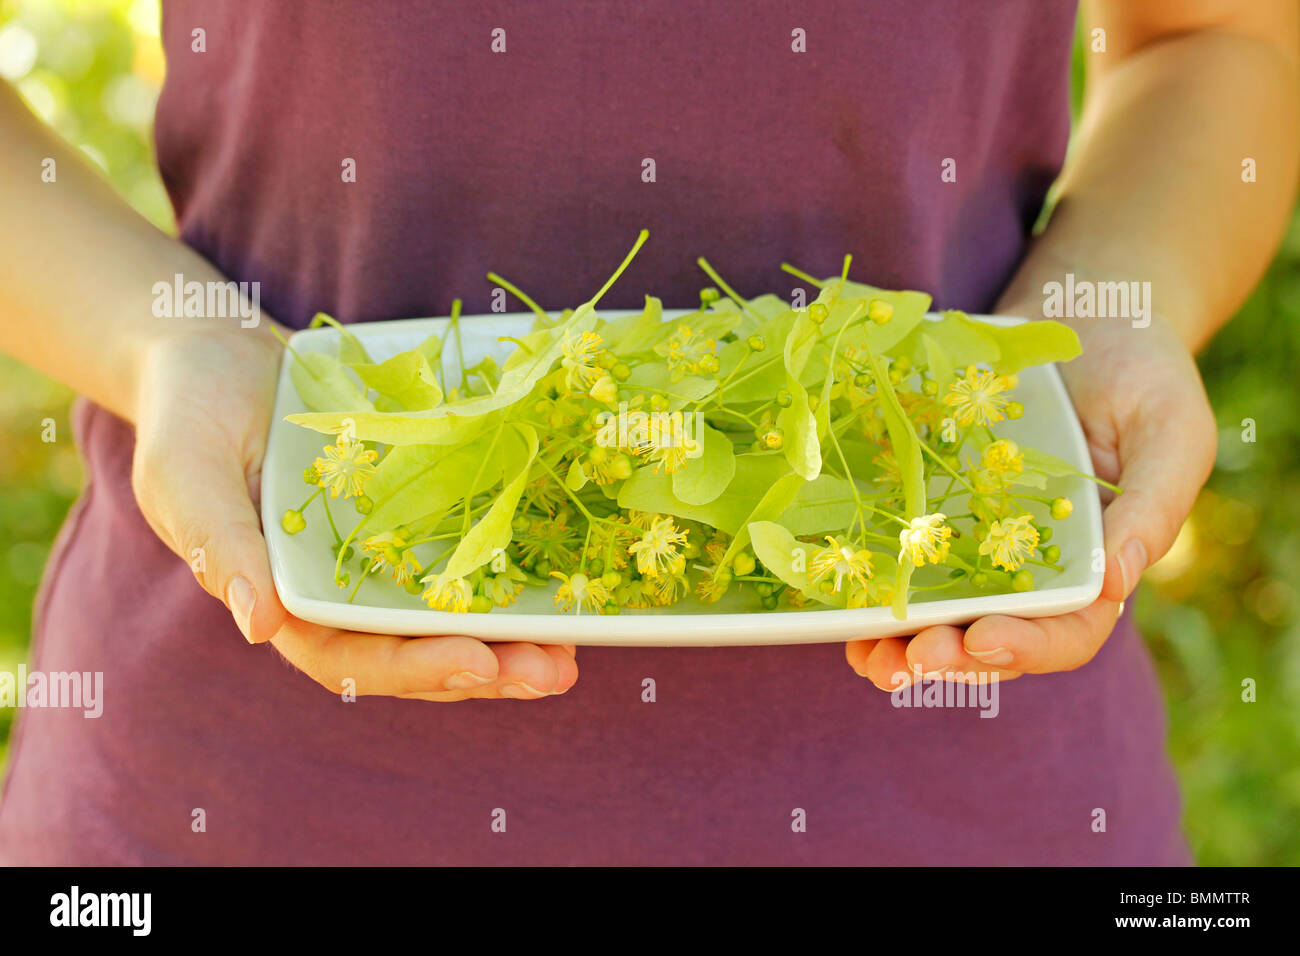 Collecting linden tree leaves - Stock Image